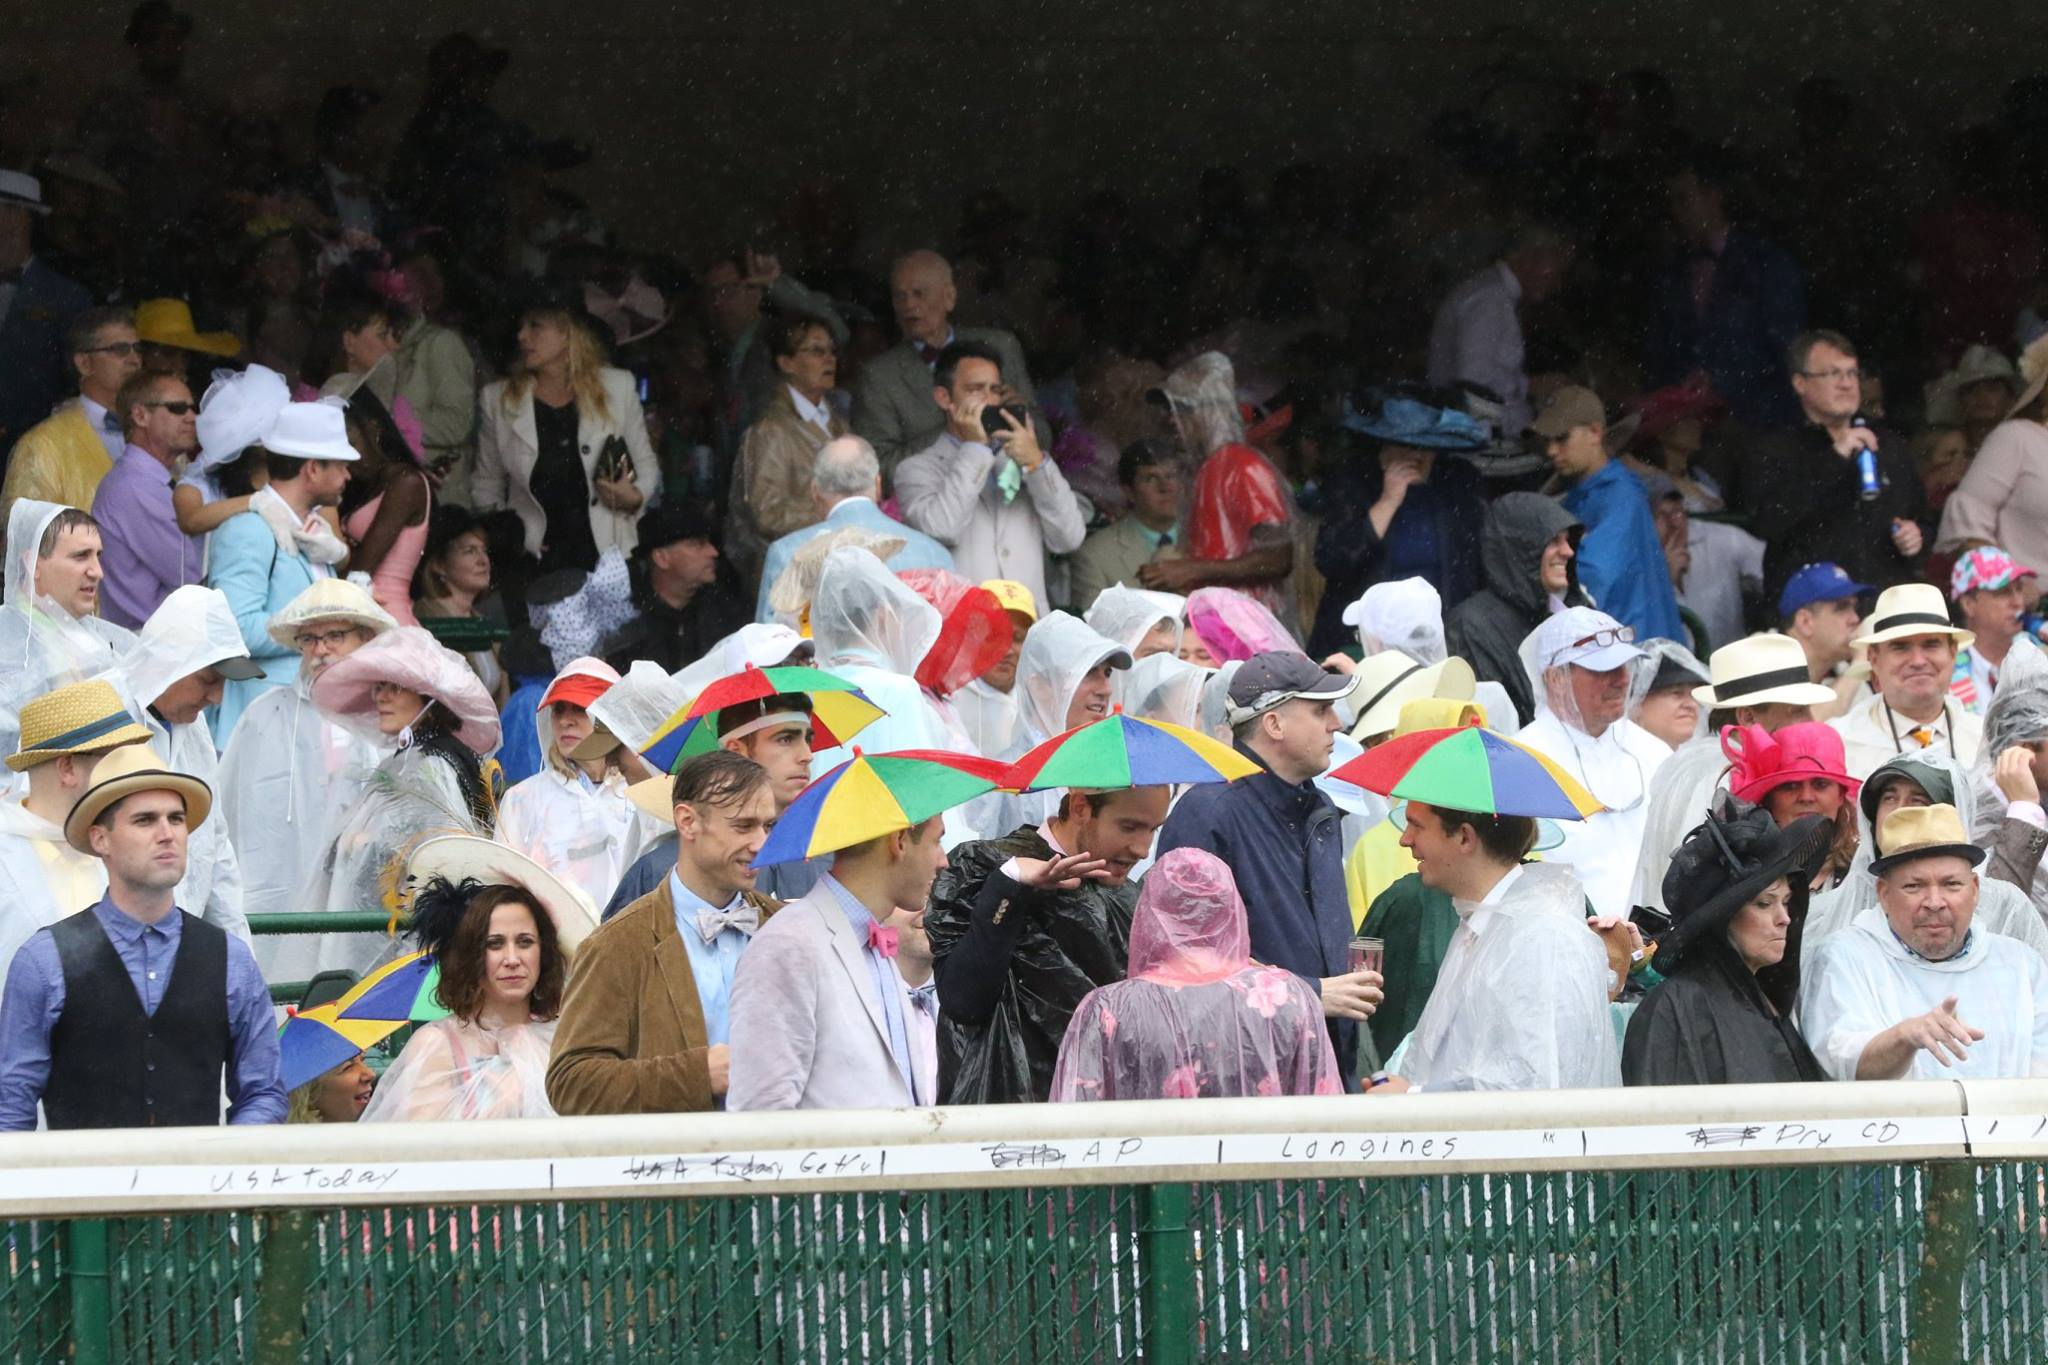 Crowd at the 2018 Kentucky Derby